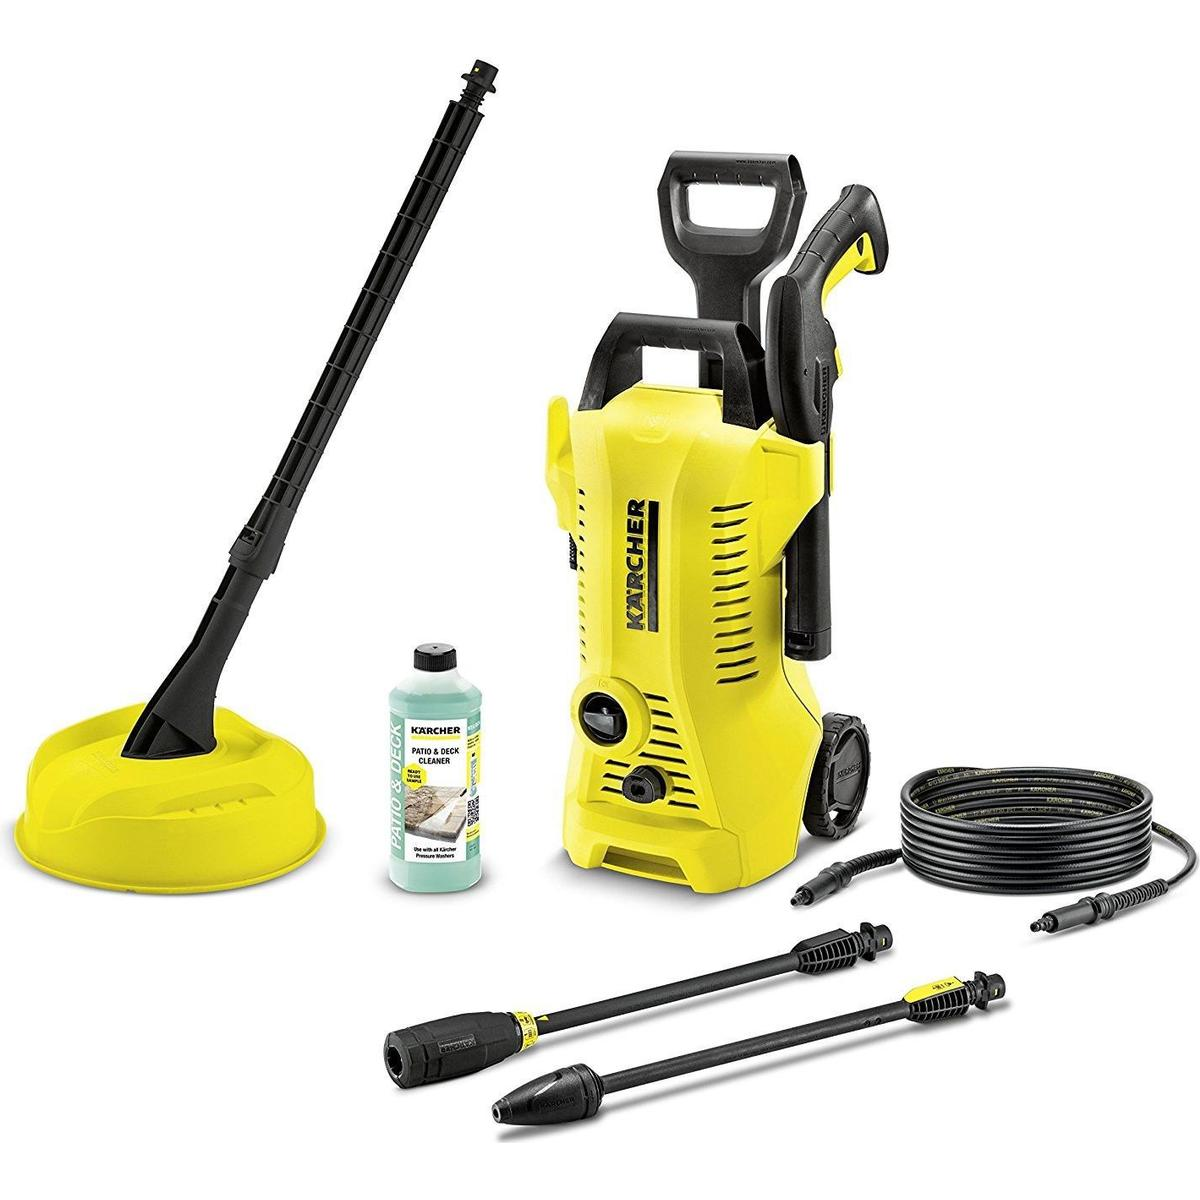 Karcher K7 Premium Full Control Home Compare Best Kärcher Pressure Washers Prices On The Market